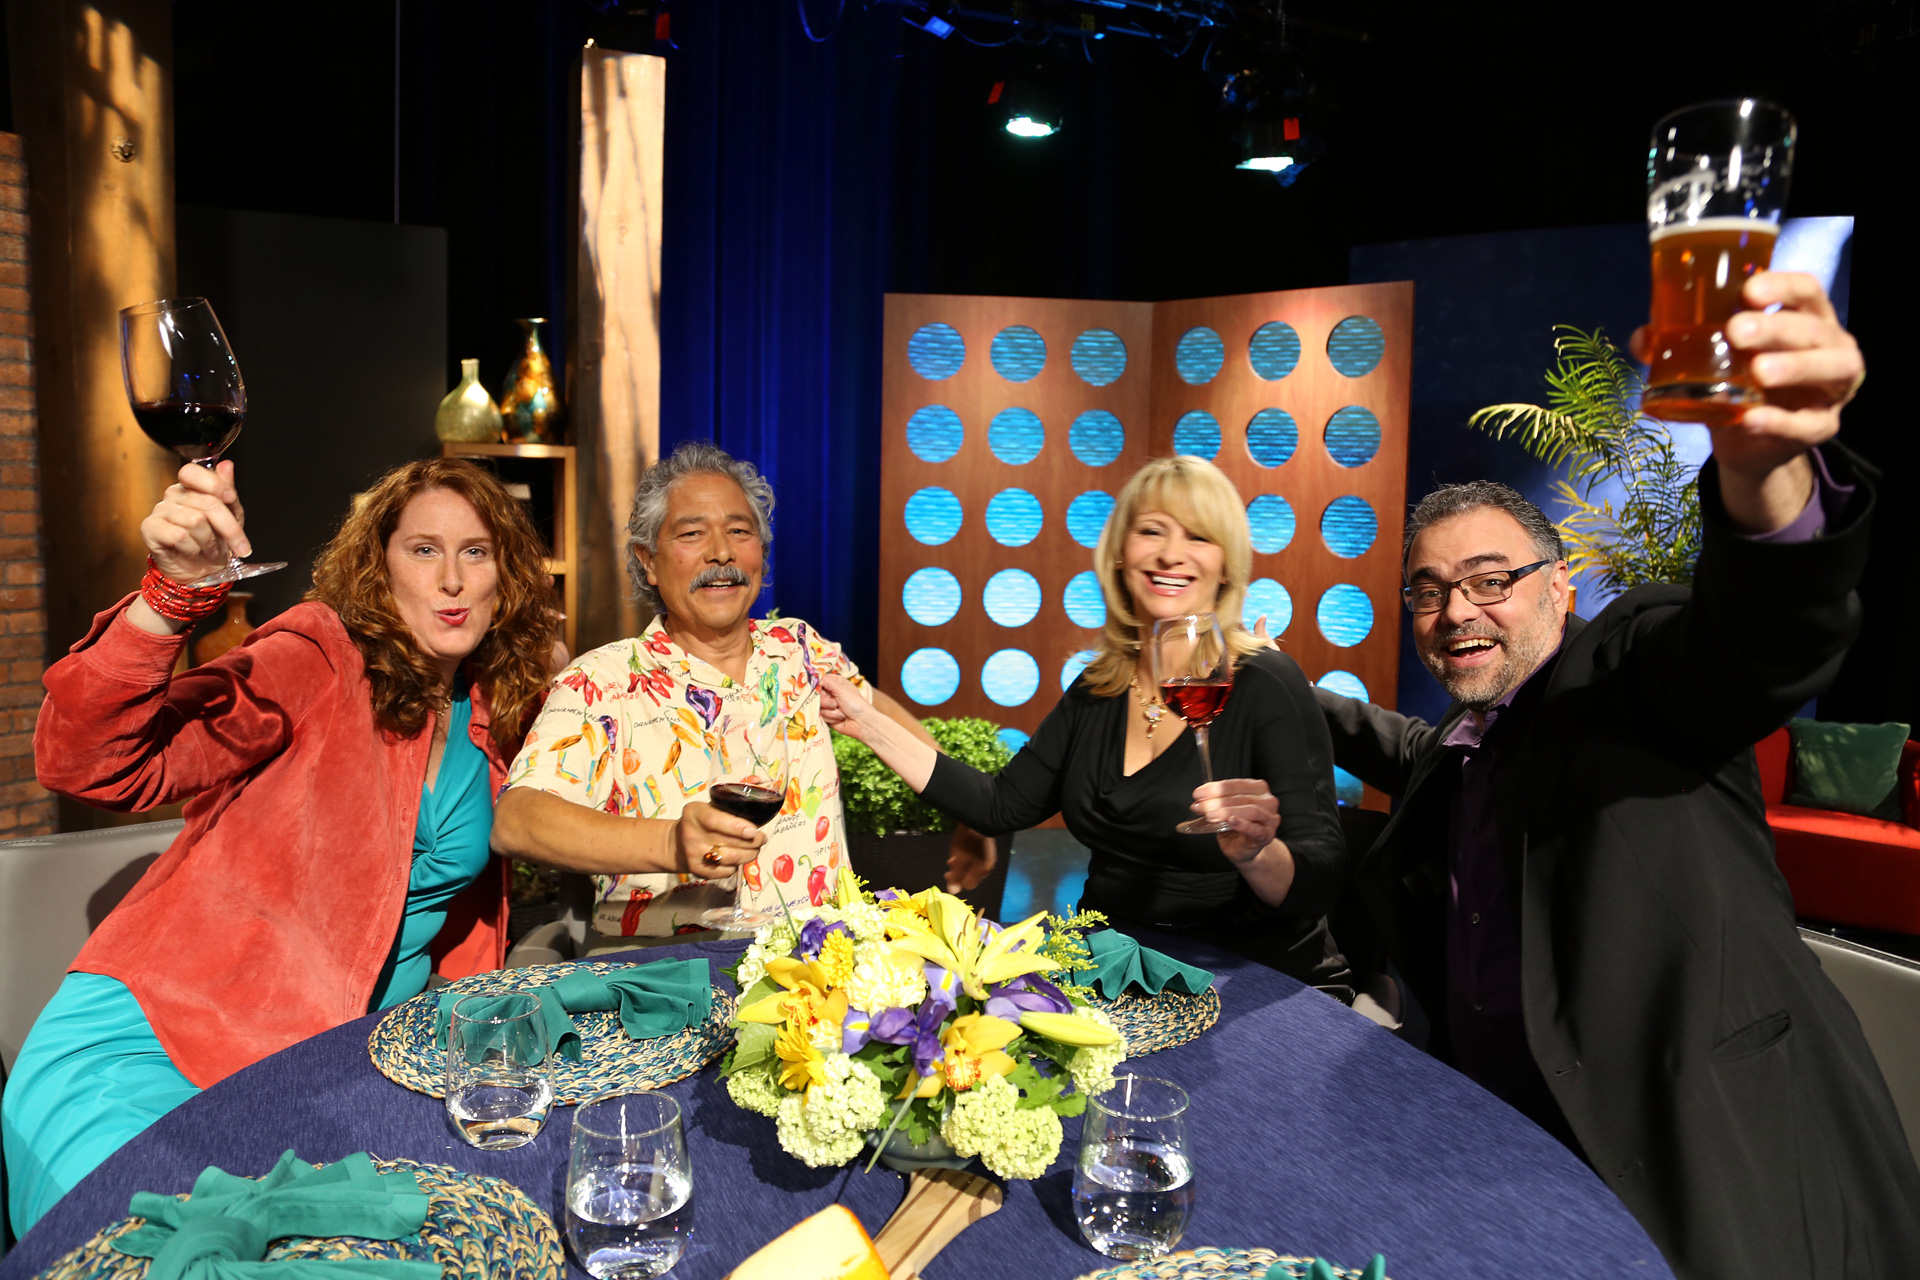 Host Leslie Sbrocco and guests having fun on the set of the episode 13 of season 11.